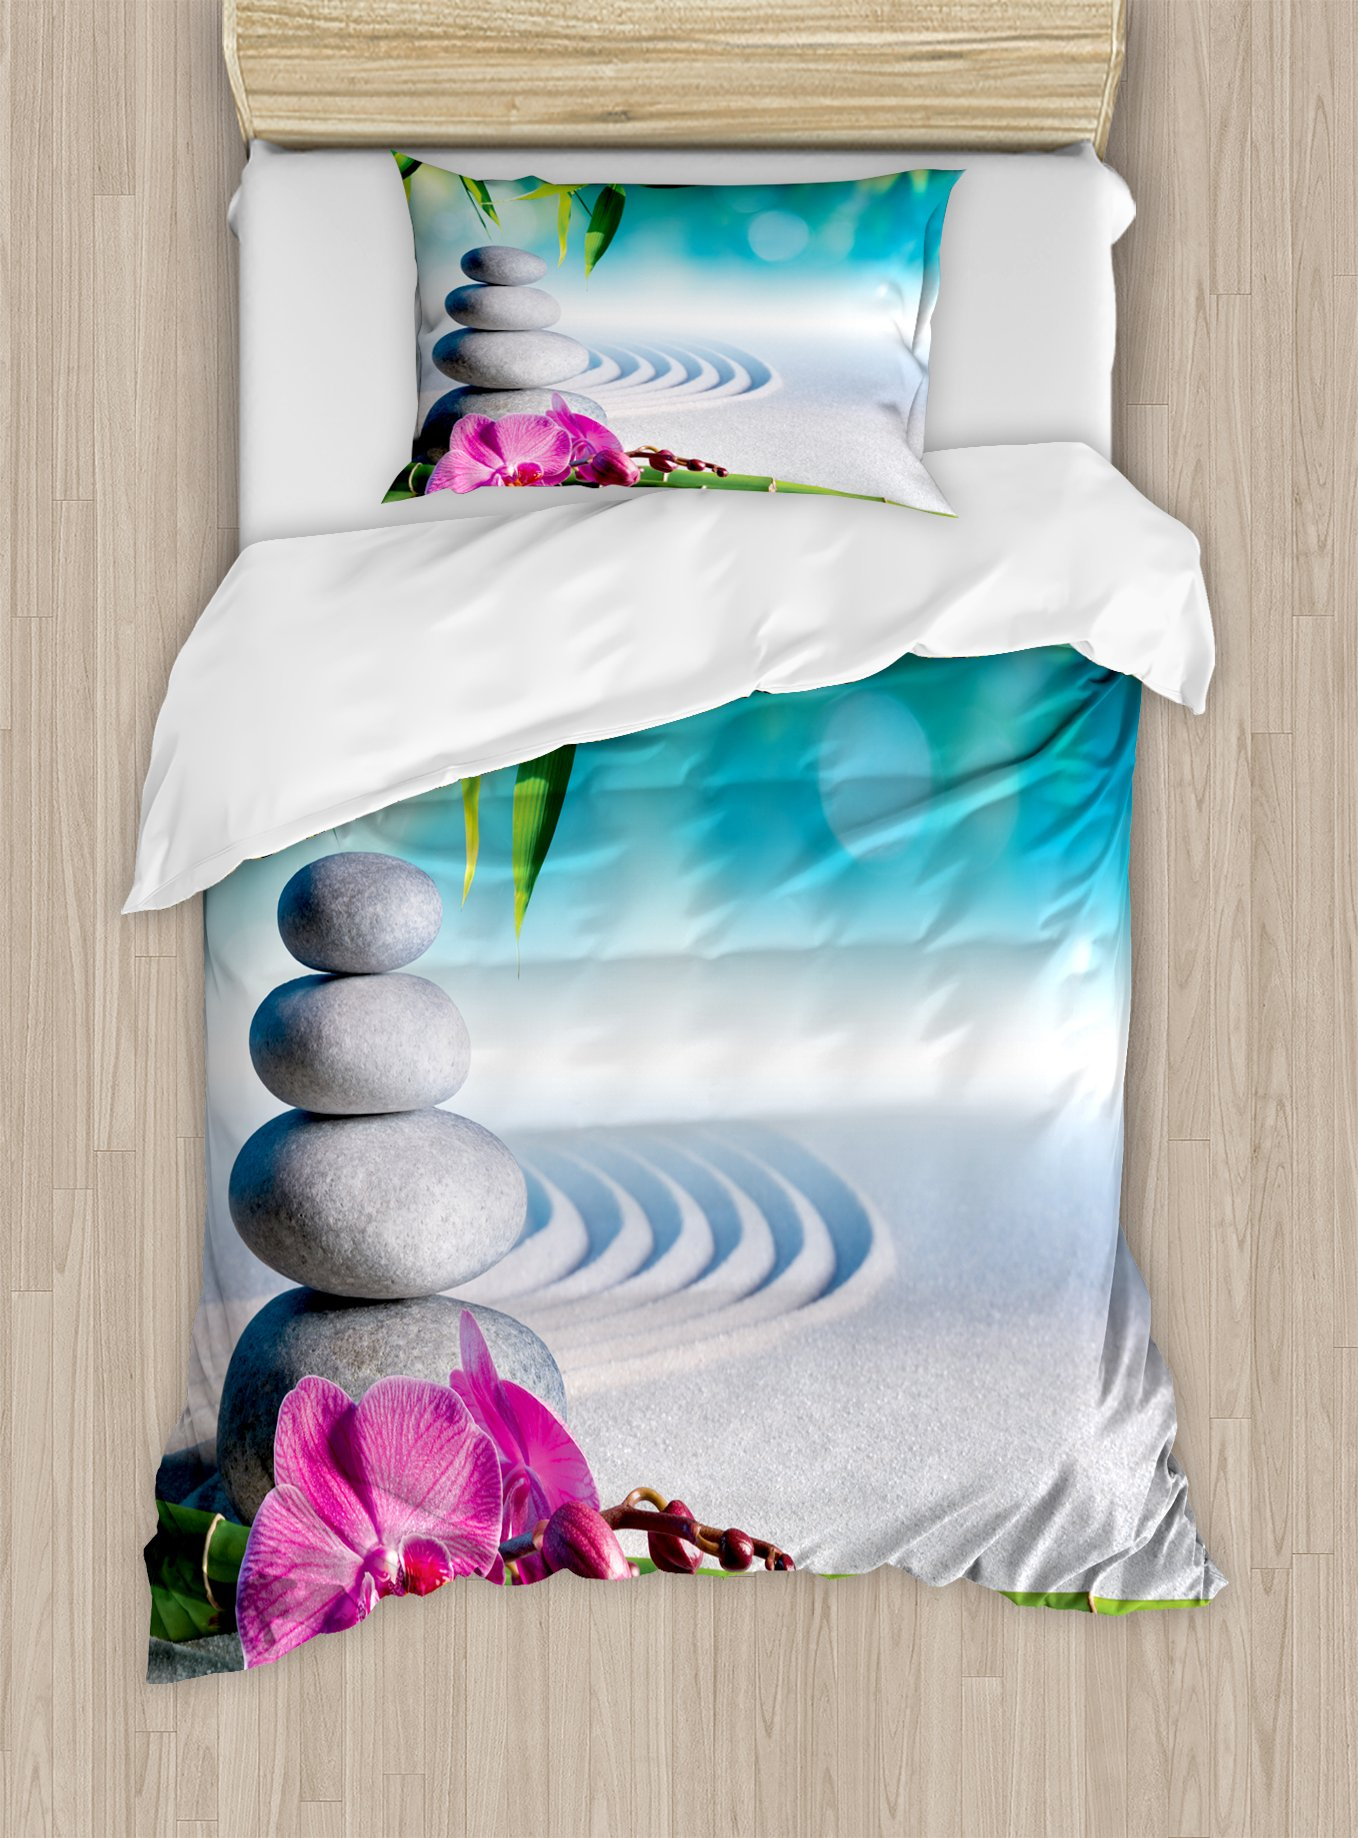 Ambesonne Spa Duvet Cover Set Twin Size, Sand Orchid and Massage Stones in Zen Garden Sunny Day Meditation Yoga, Decorative 2 Piece Bedding Set with 1 Pillow Sham, Blue Fern Green Fuchsia